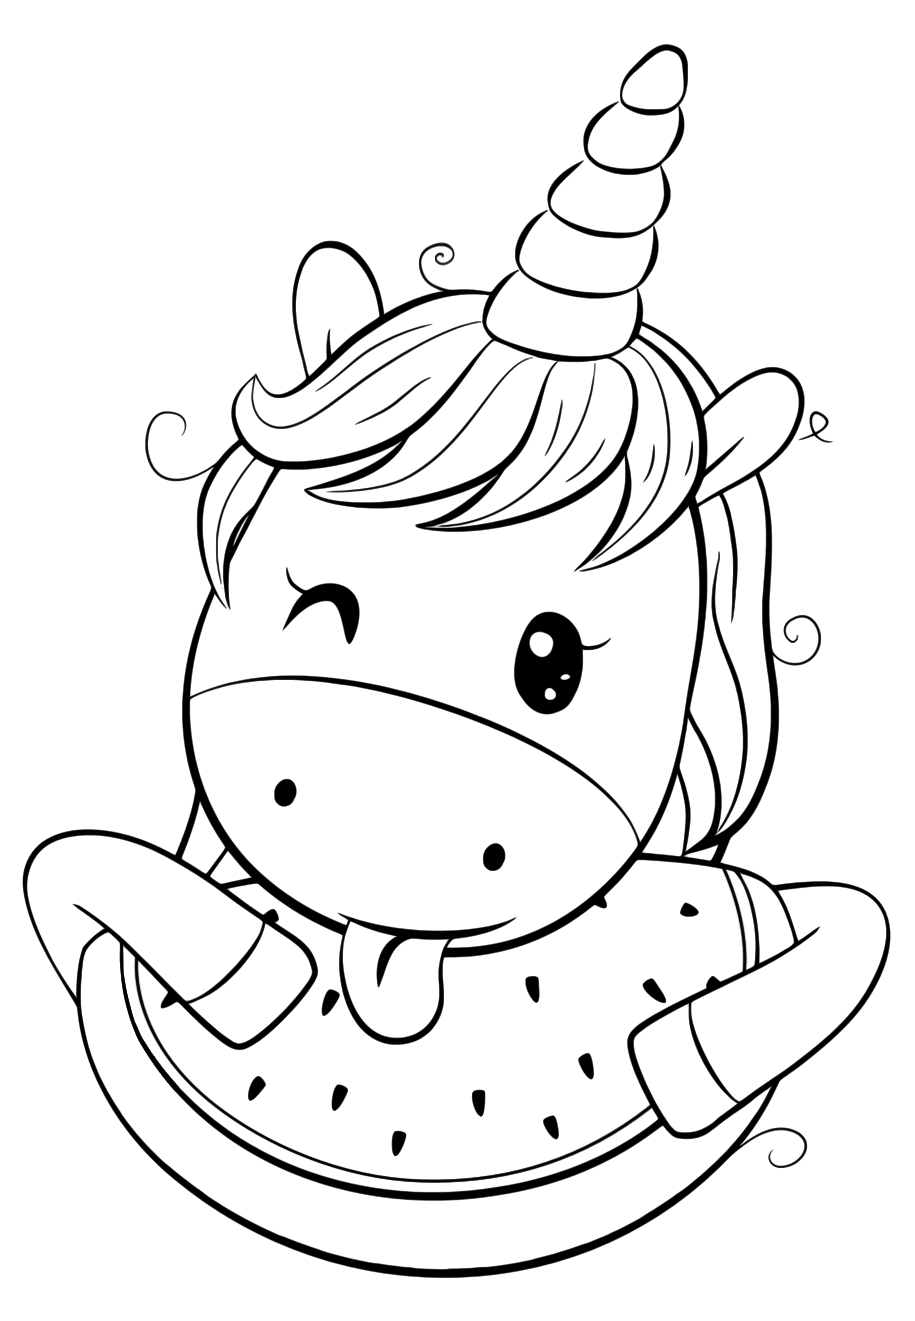 coloring unicorn colour 31 unicorn coloring pages for girls pics tunnel to colour coloring unicorn